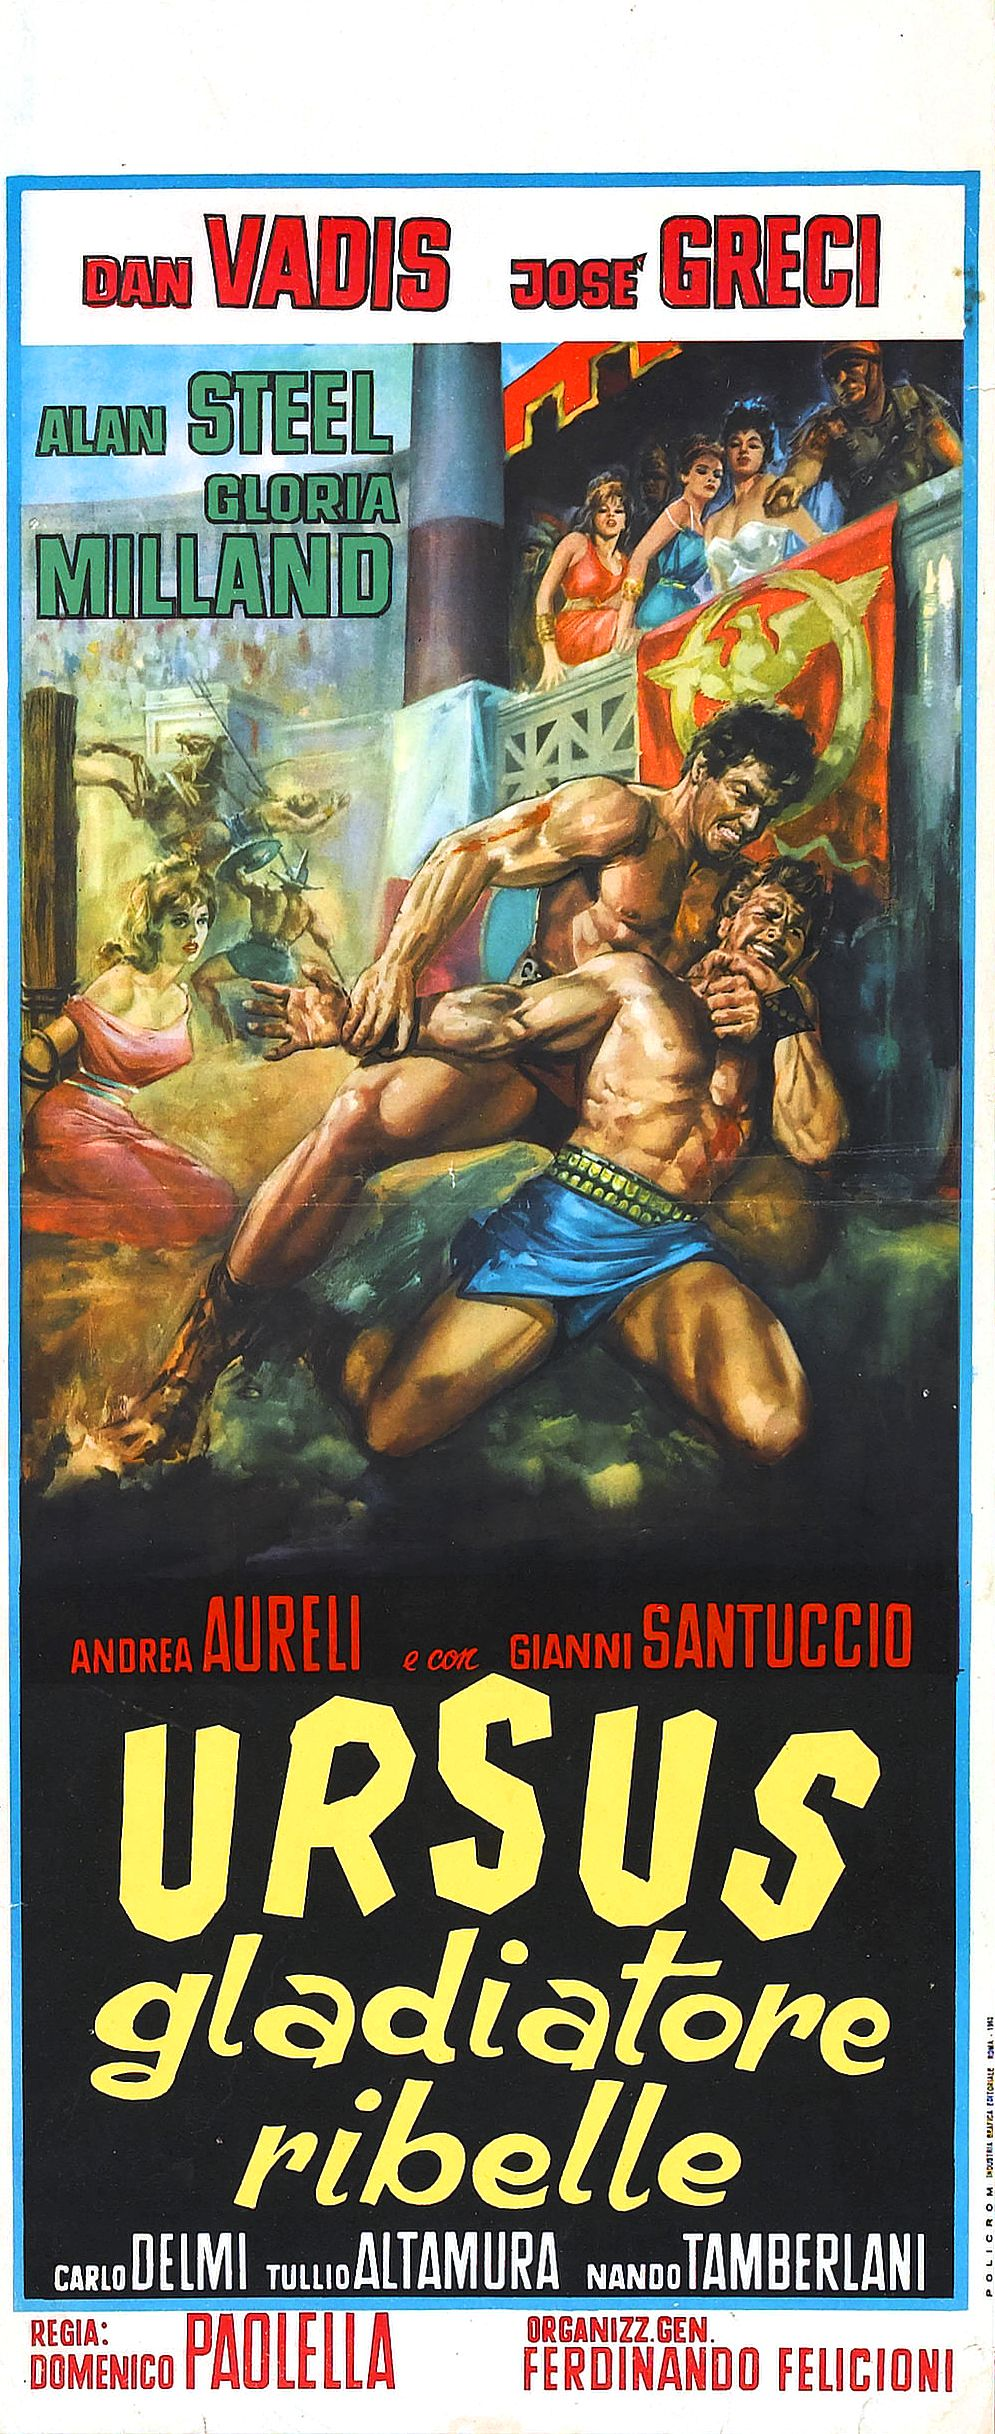 Ursus, the Rebel Gladiator (1962)